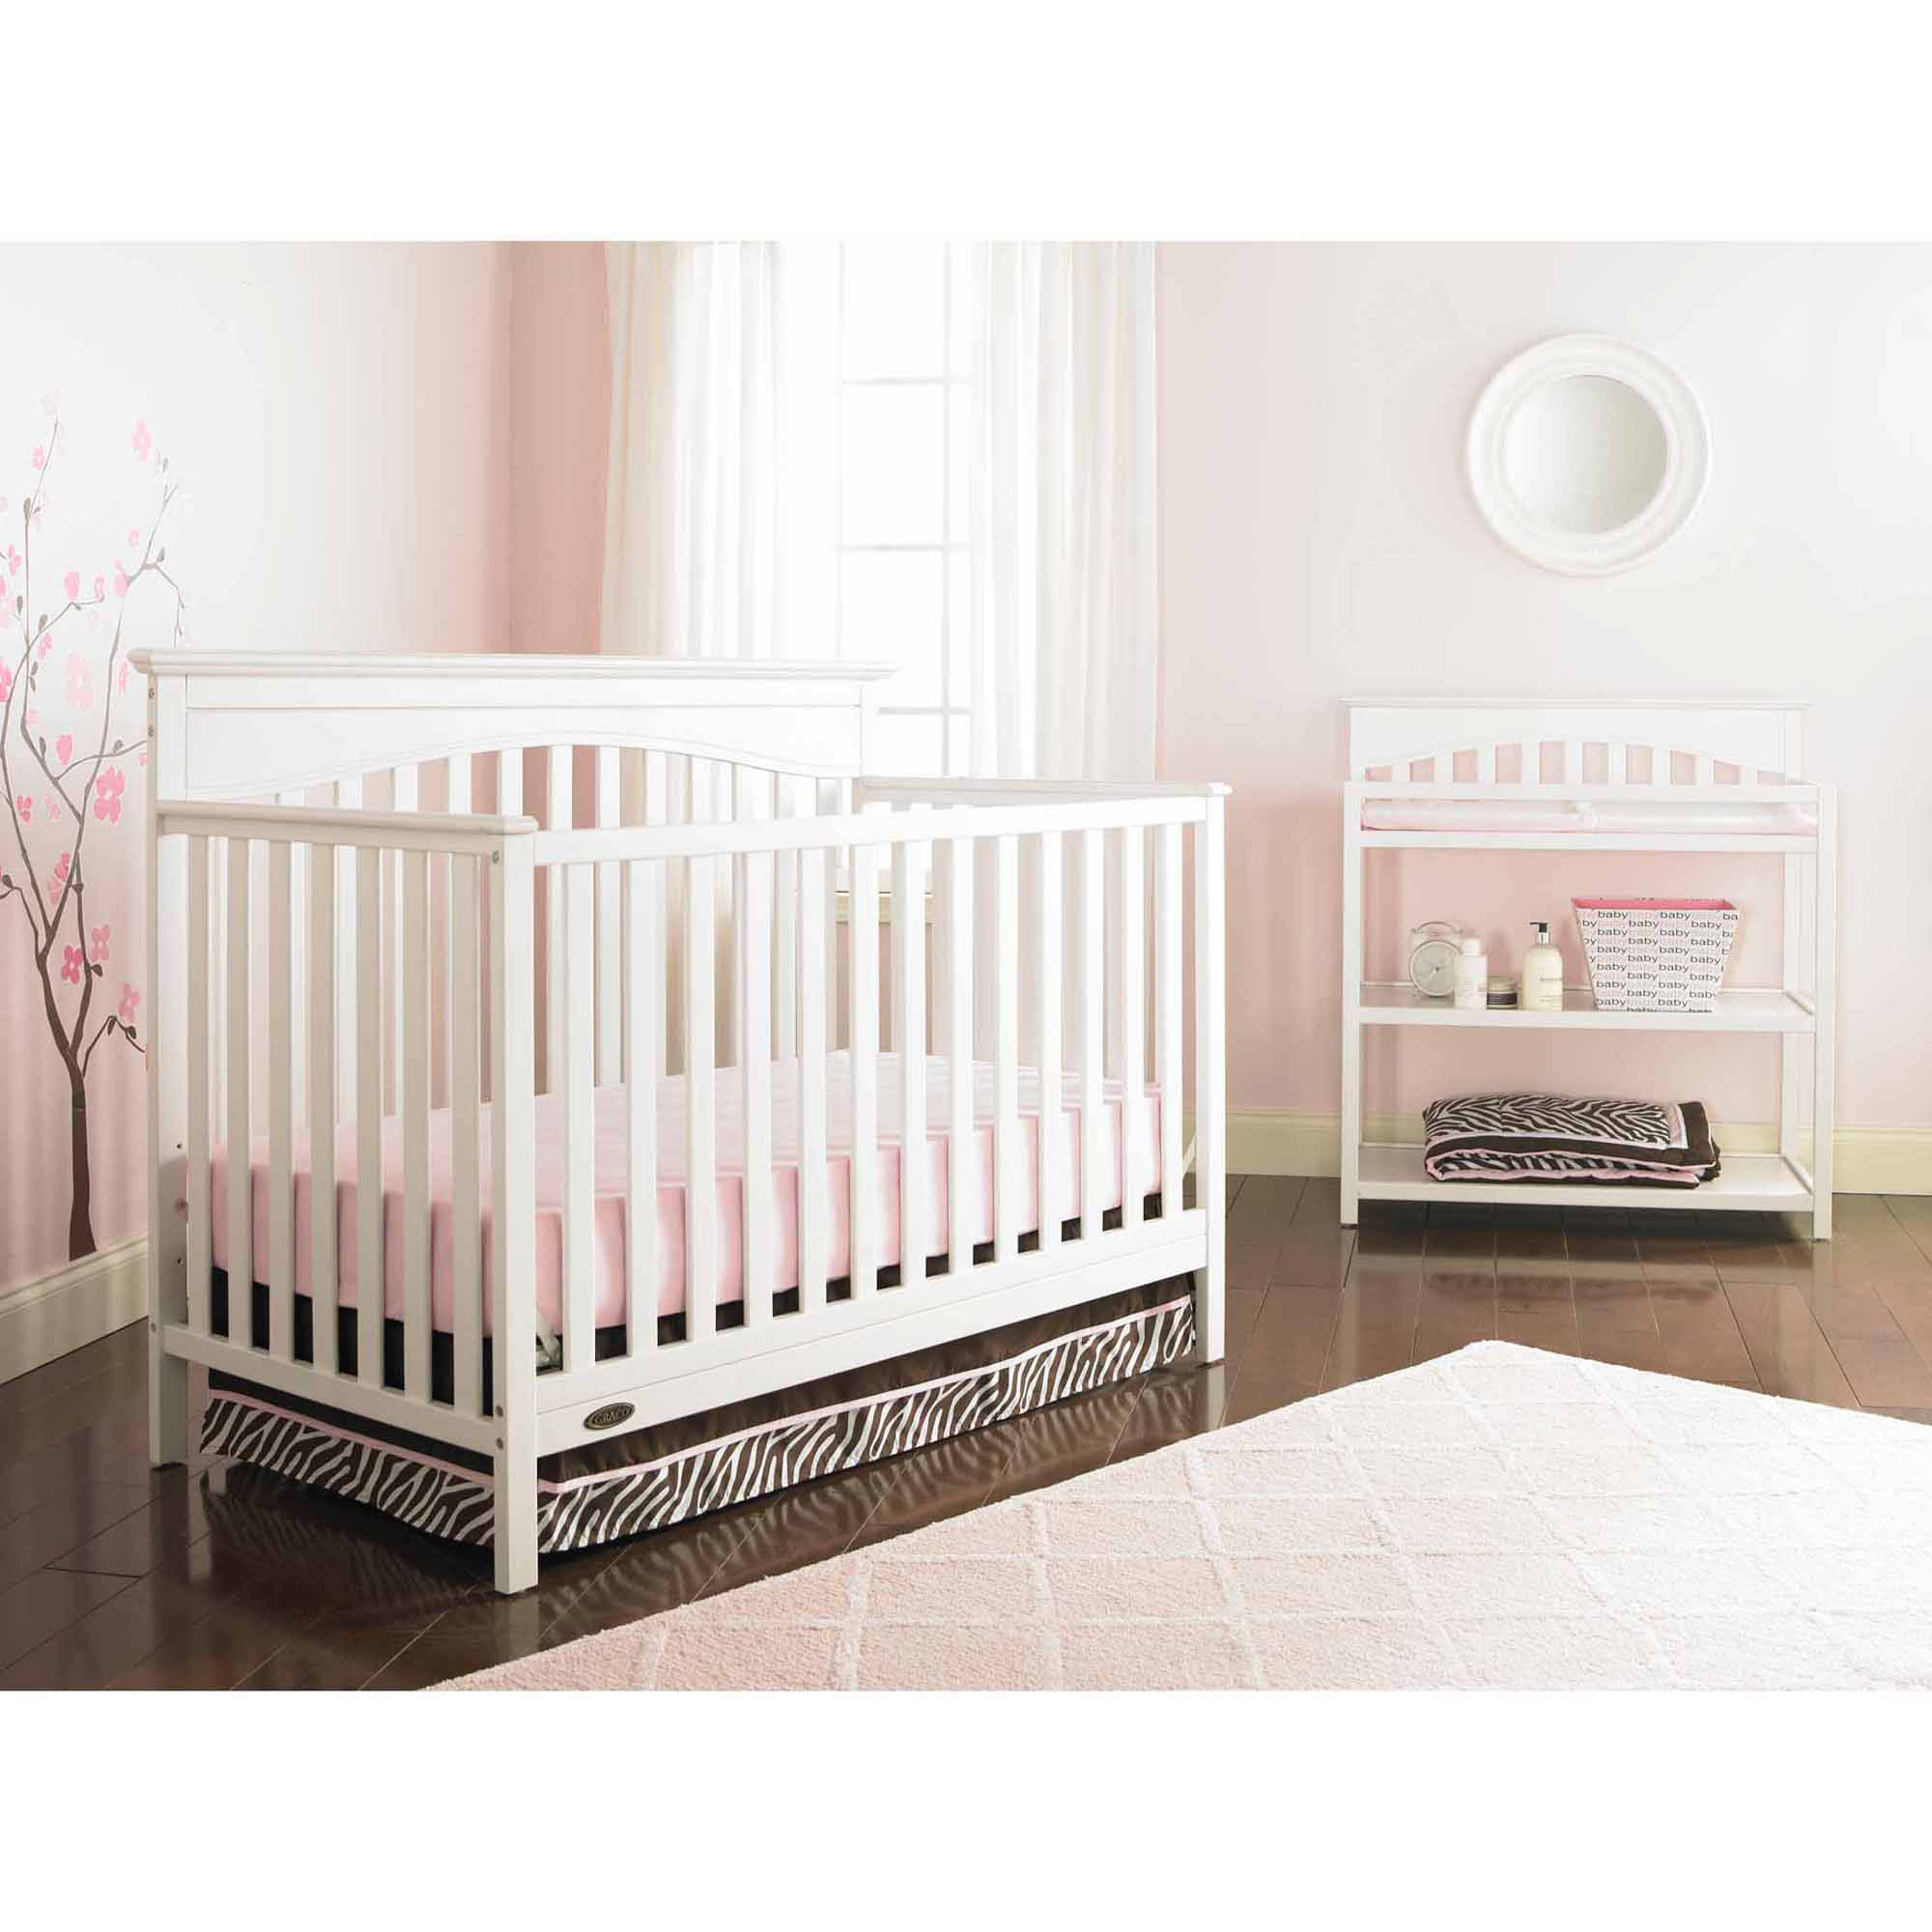 Graco Hayden 4-in-1 Convertible Fixed-Side Crib, Choose Your Finish